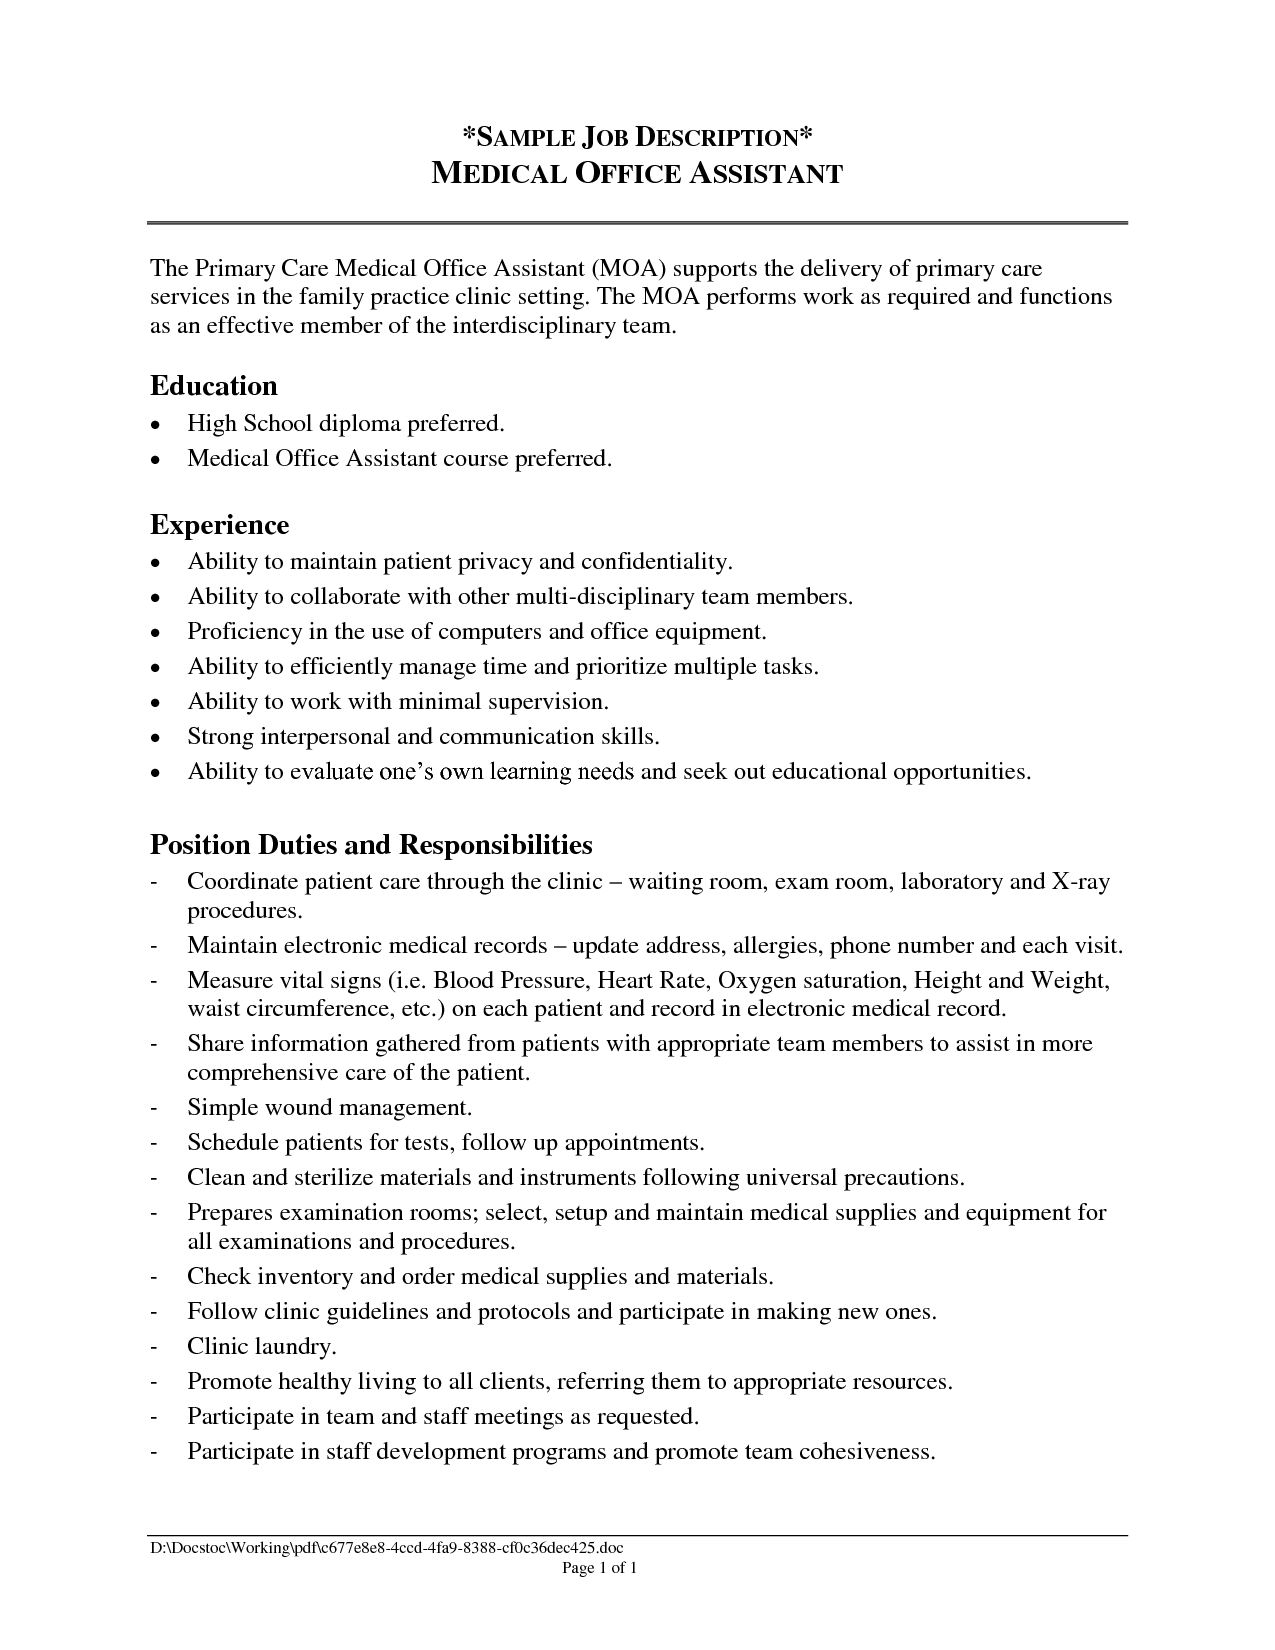 Coursework on a resume office assistant position